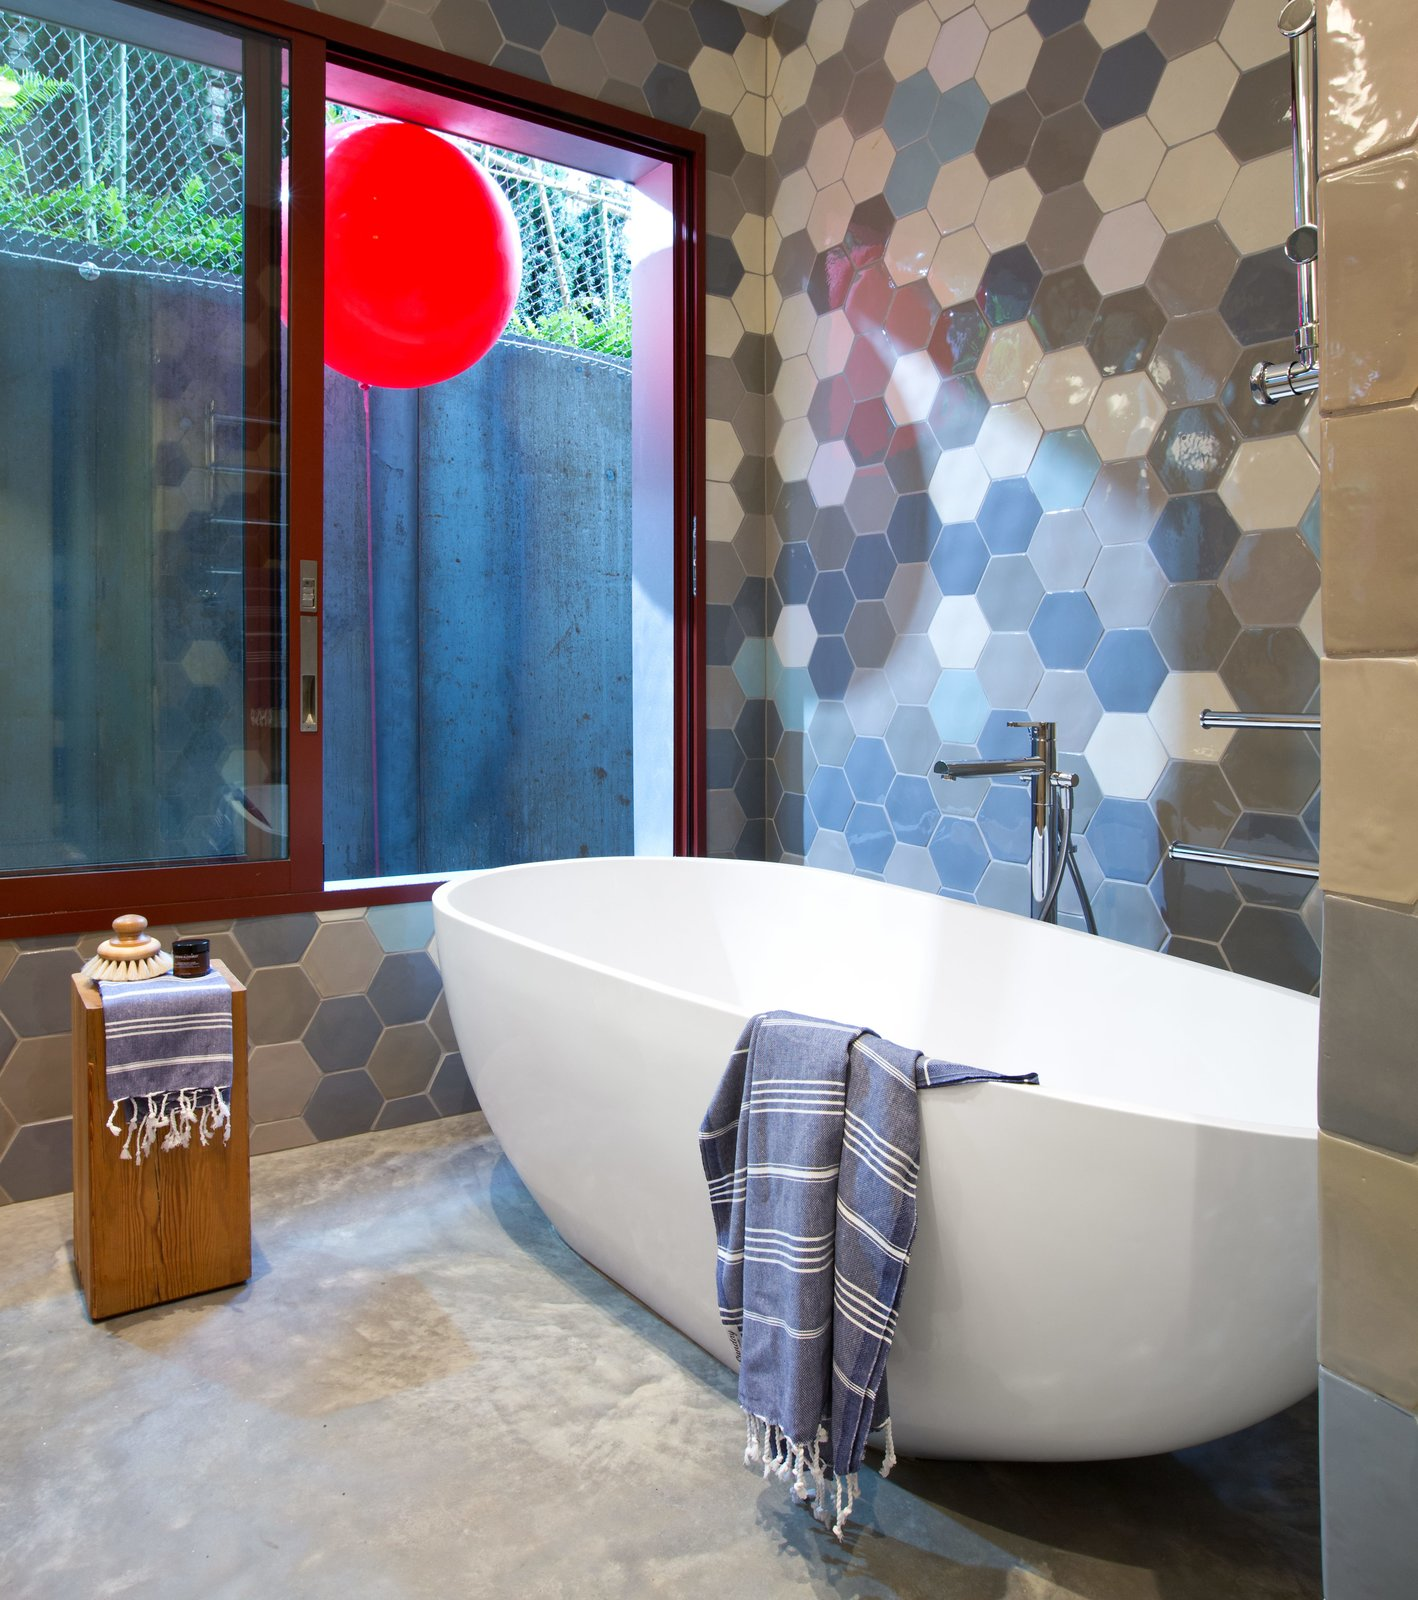 One Home, Three Bathrooms, Each with an Awesome Way to Use Tile - Dwell